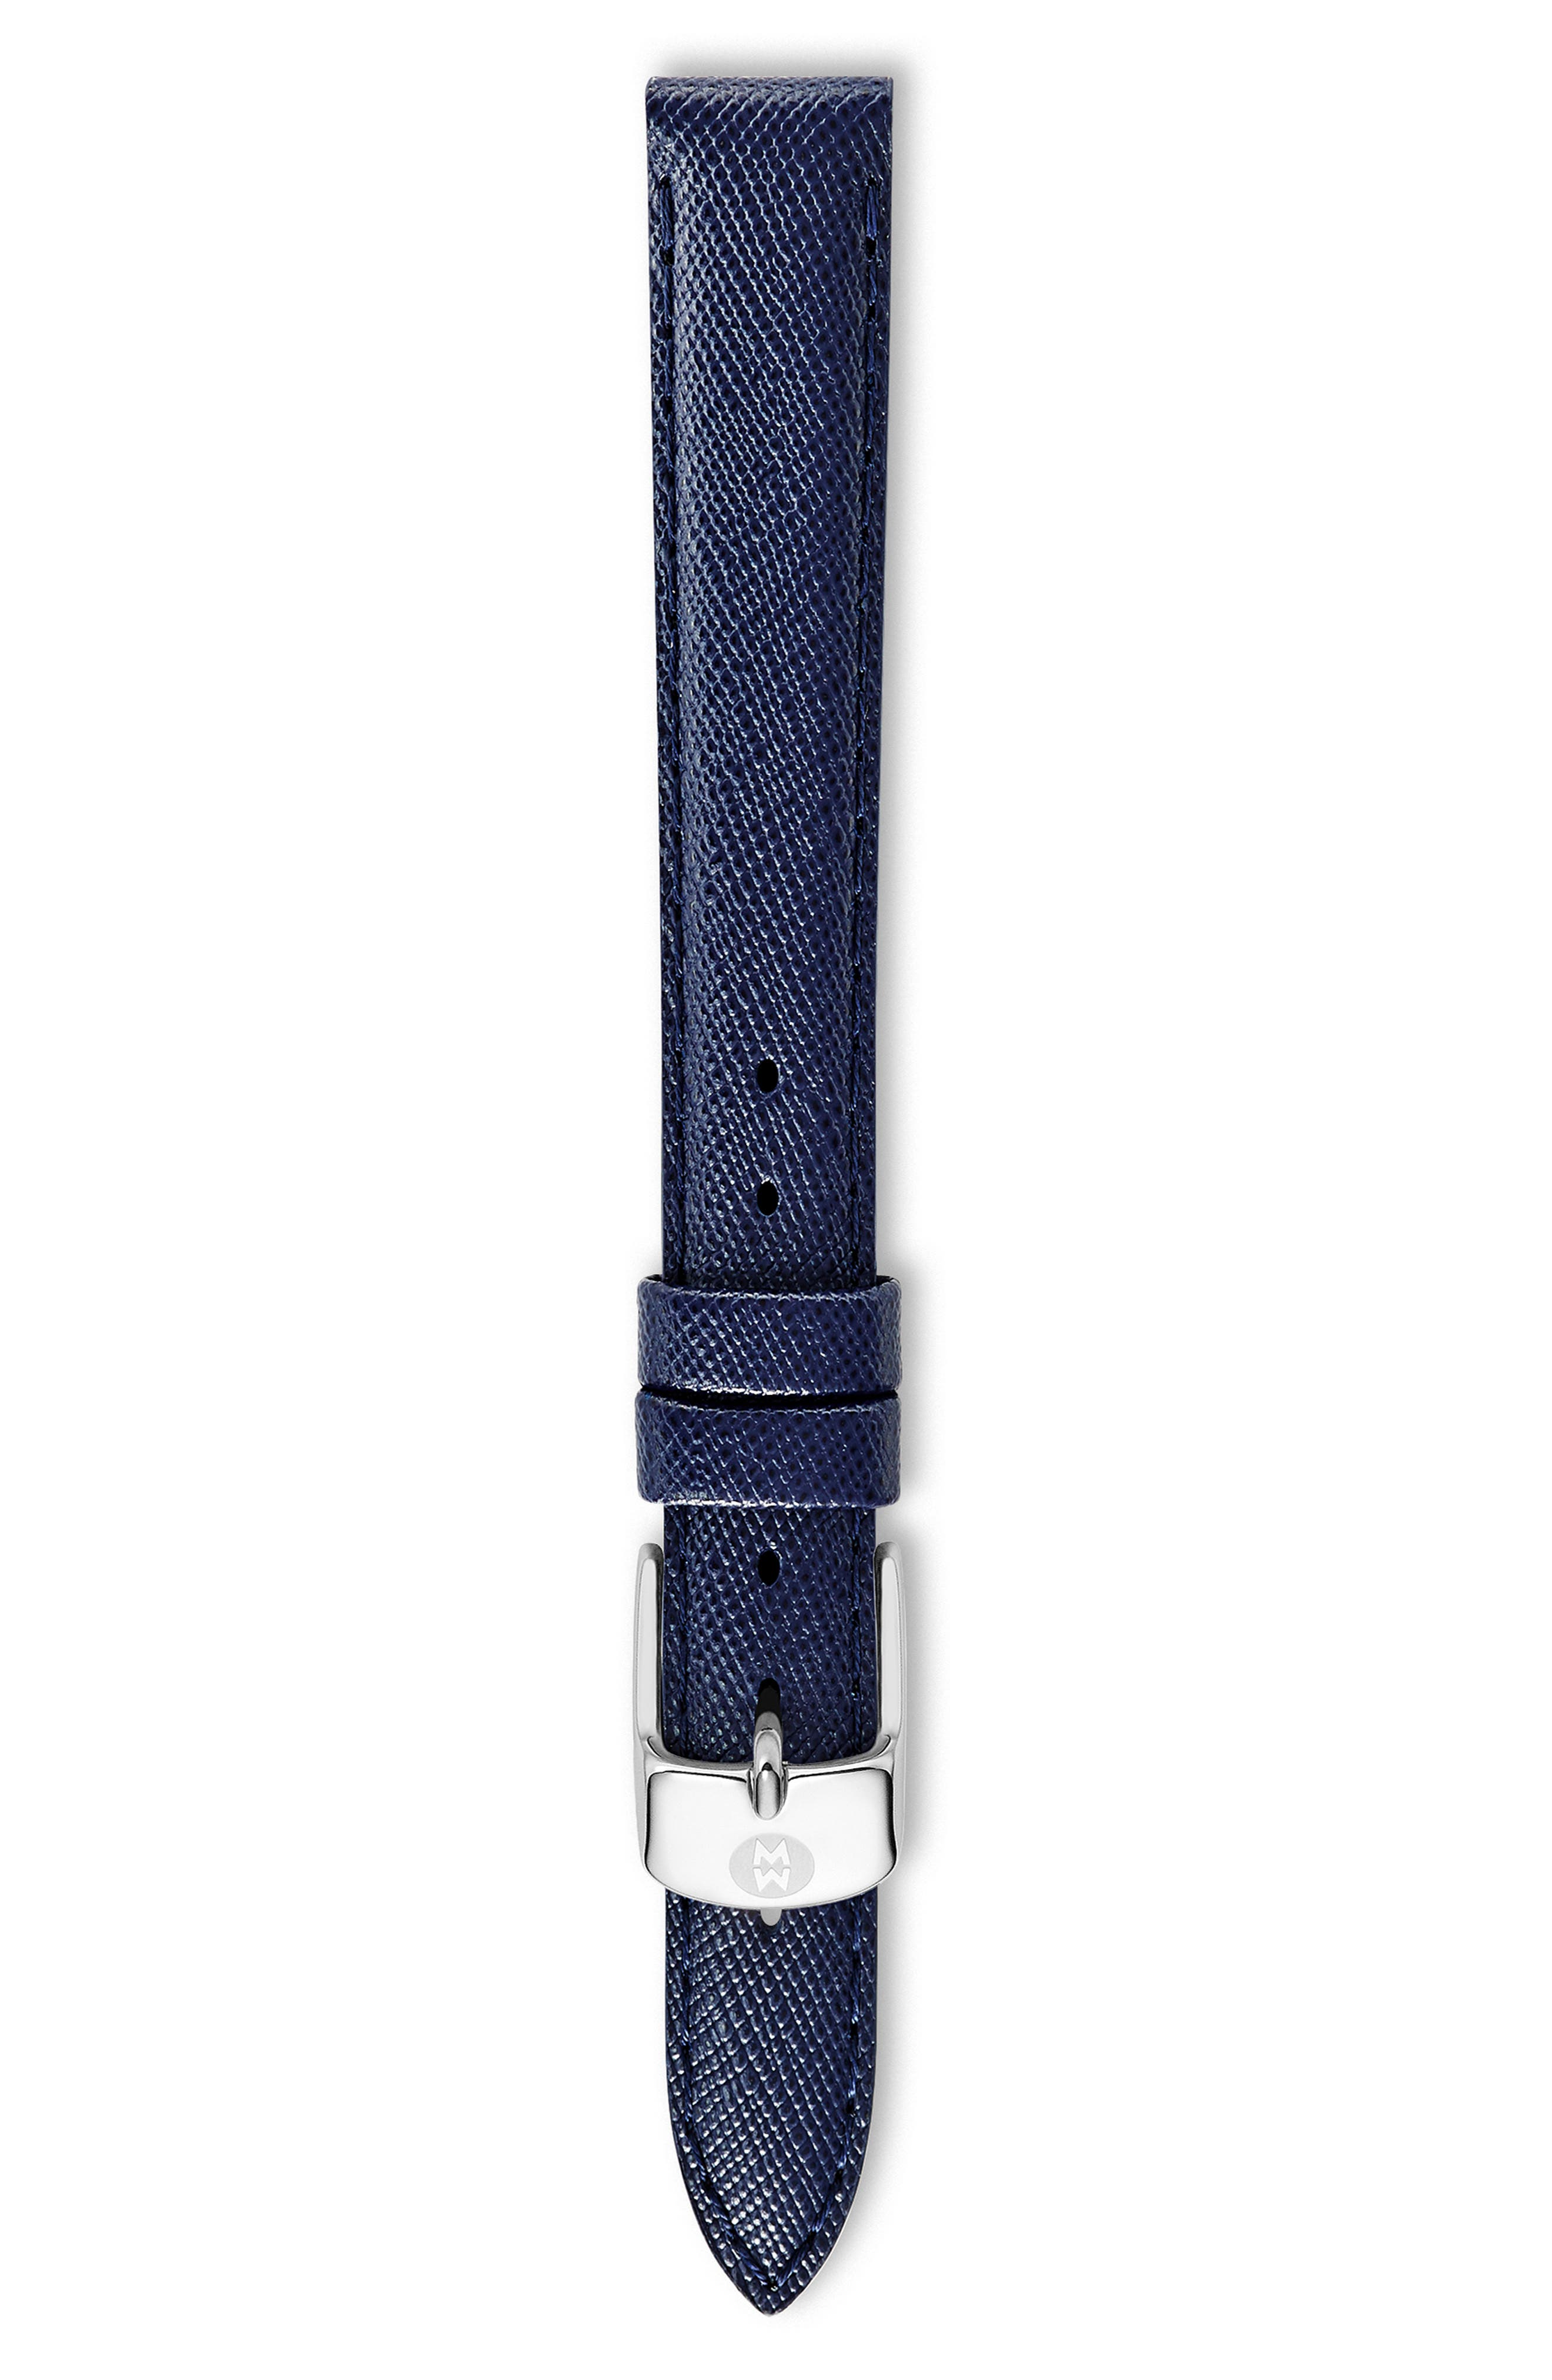 12mm Saffiano Leather Watch Strap,                             Alternate thumbnail 2, color,                             410